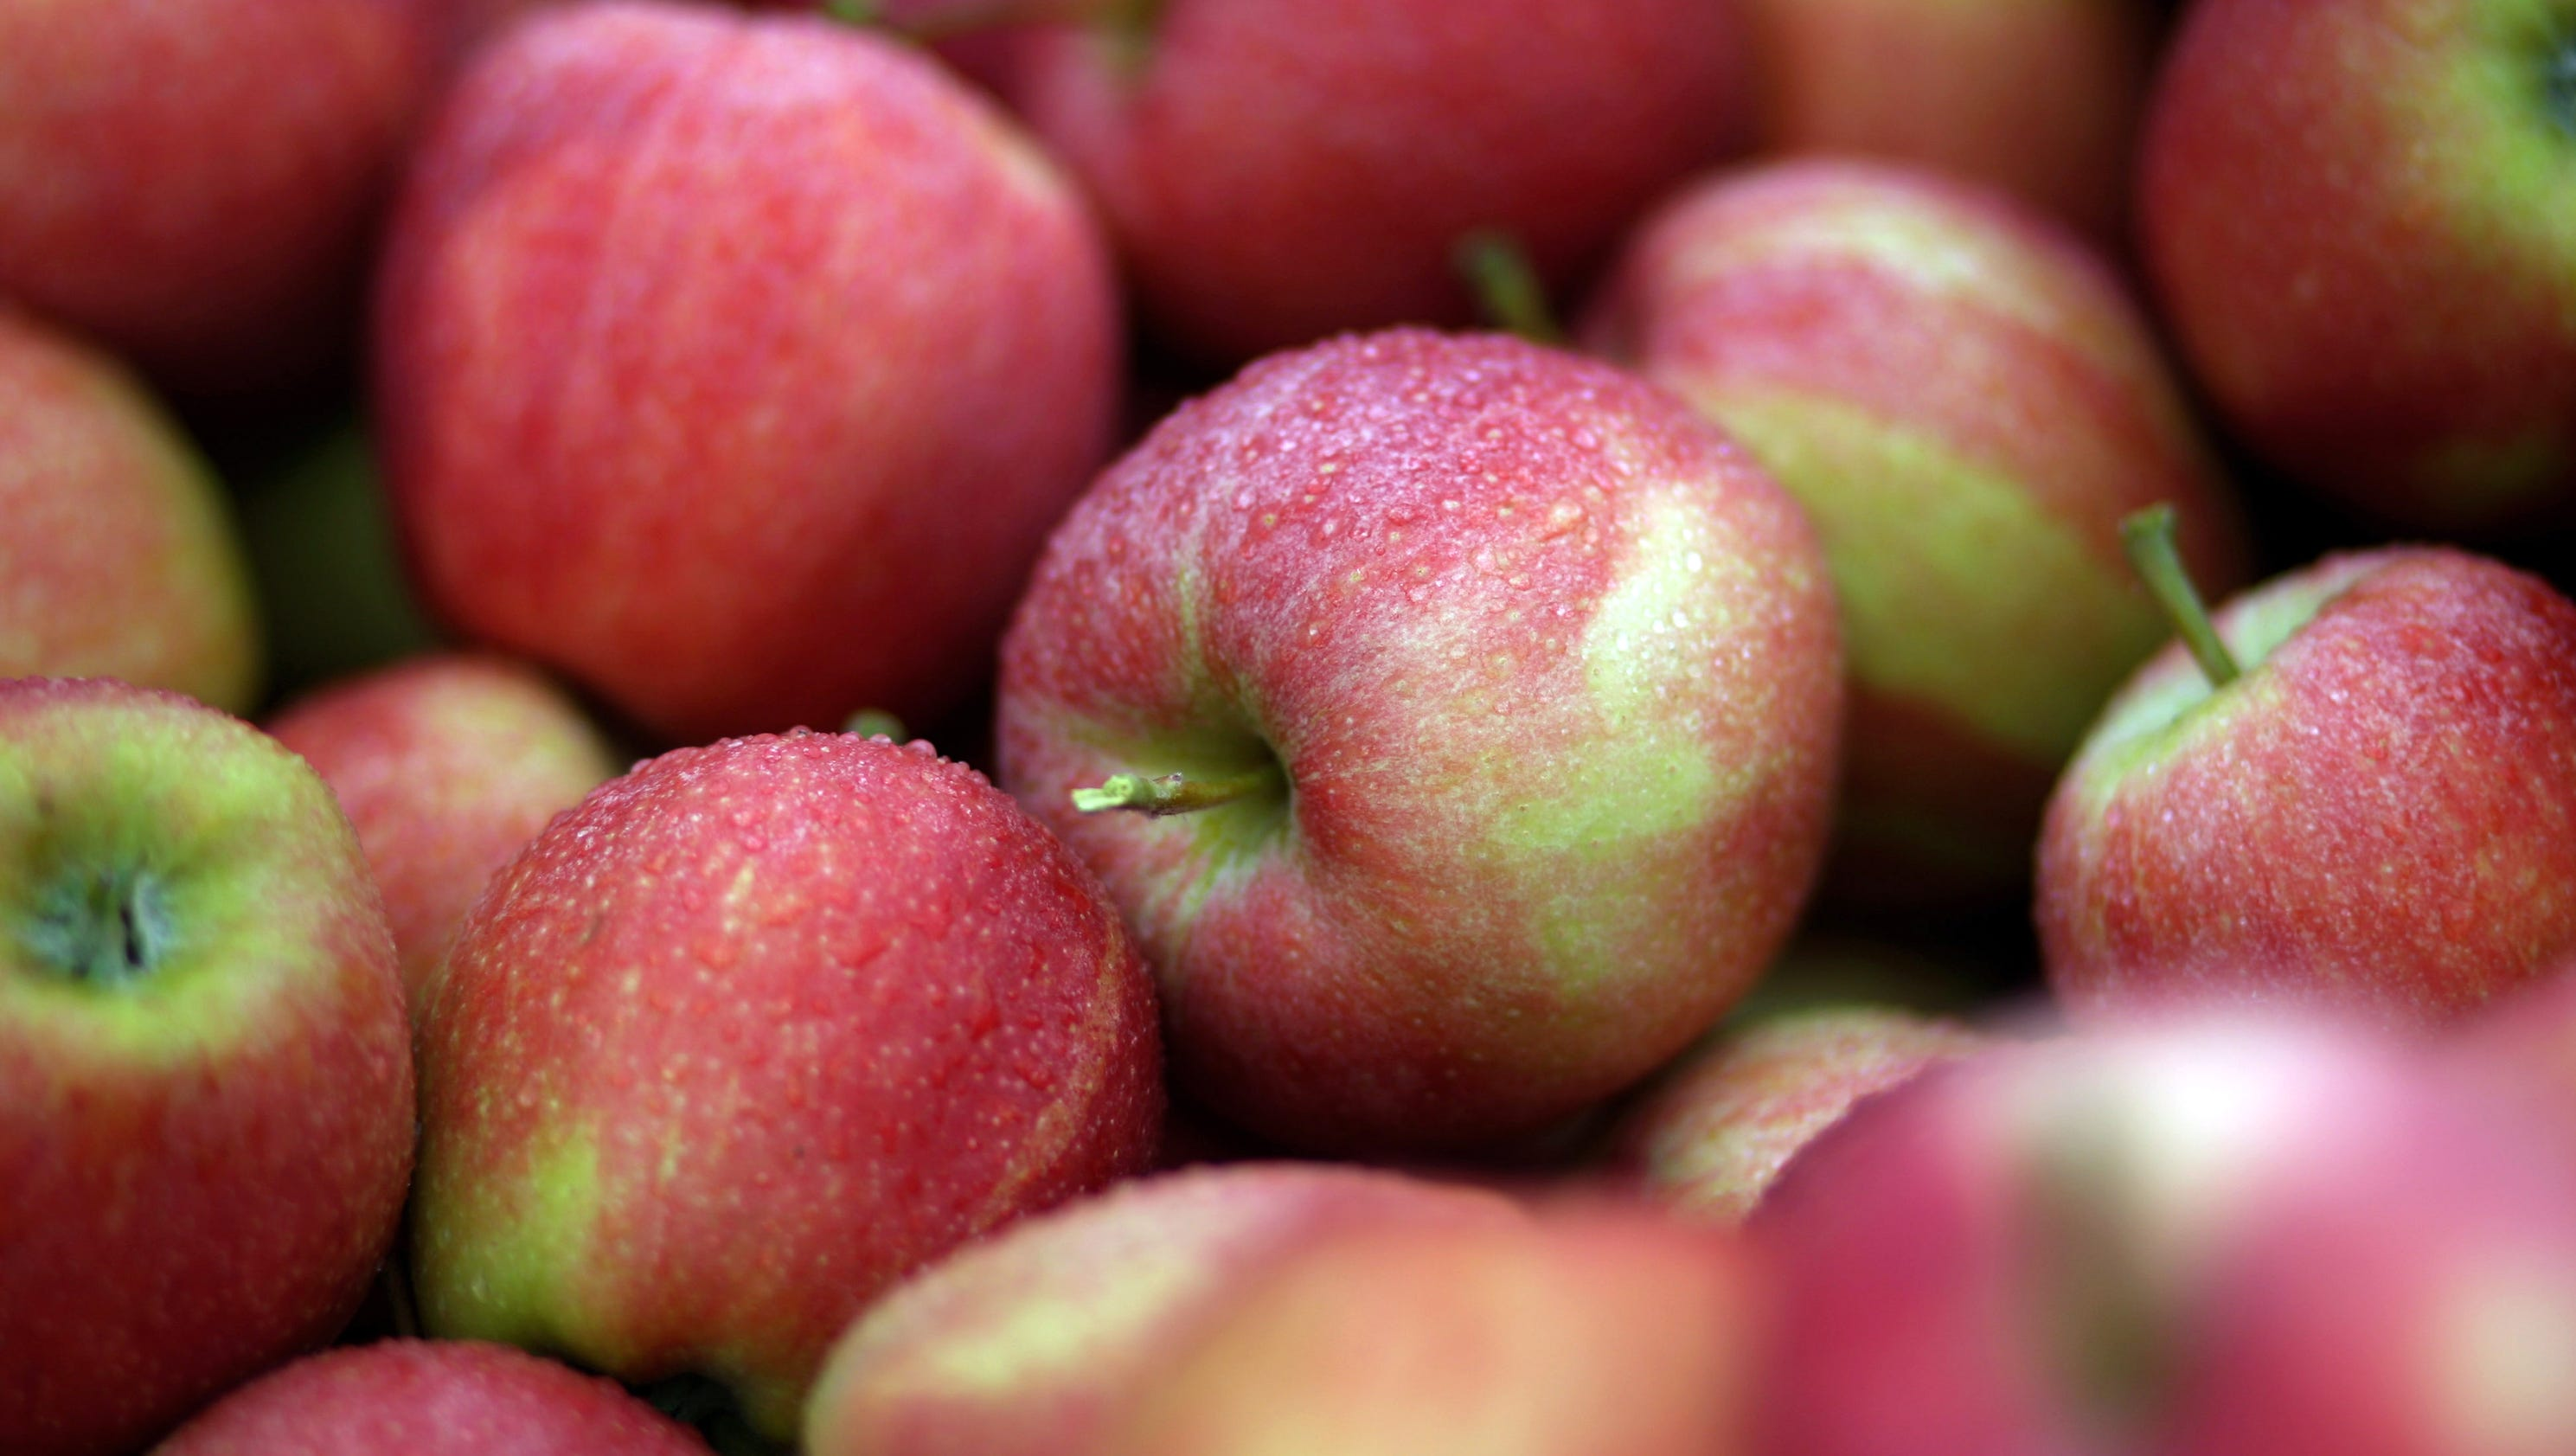 Let's Talk Food: Apples play big role in popular culture